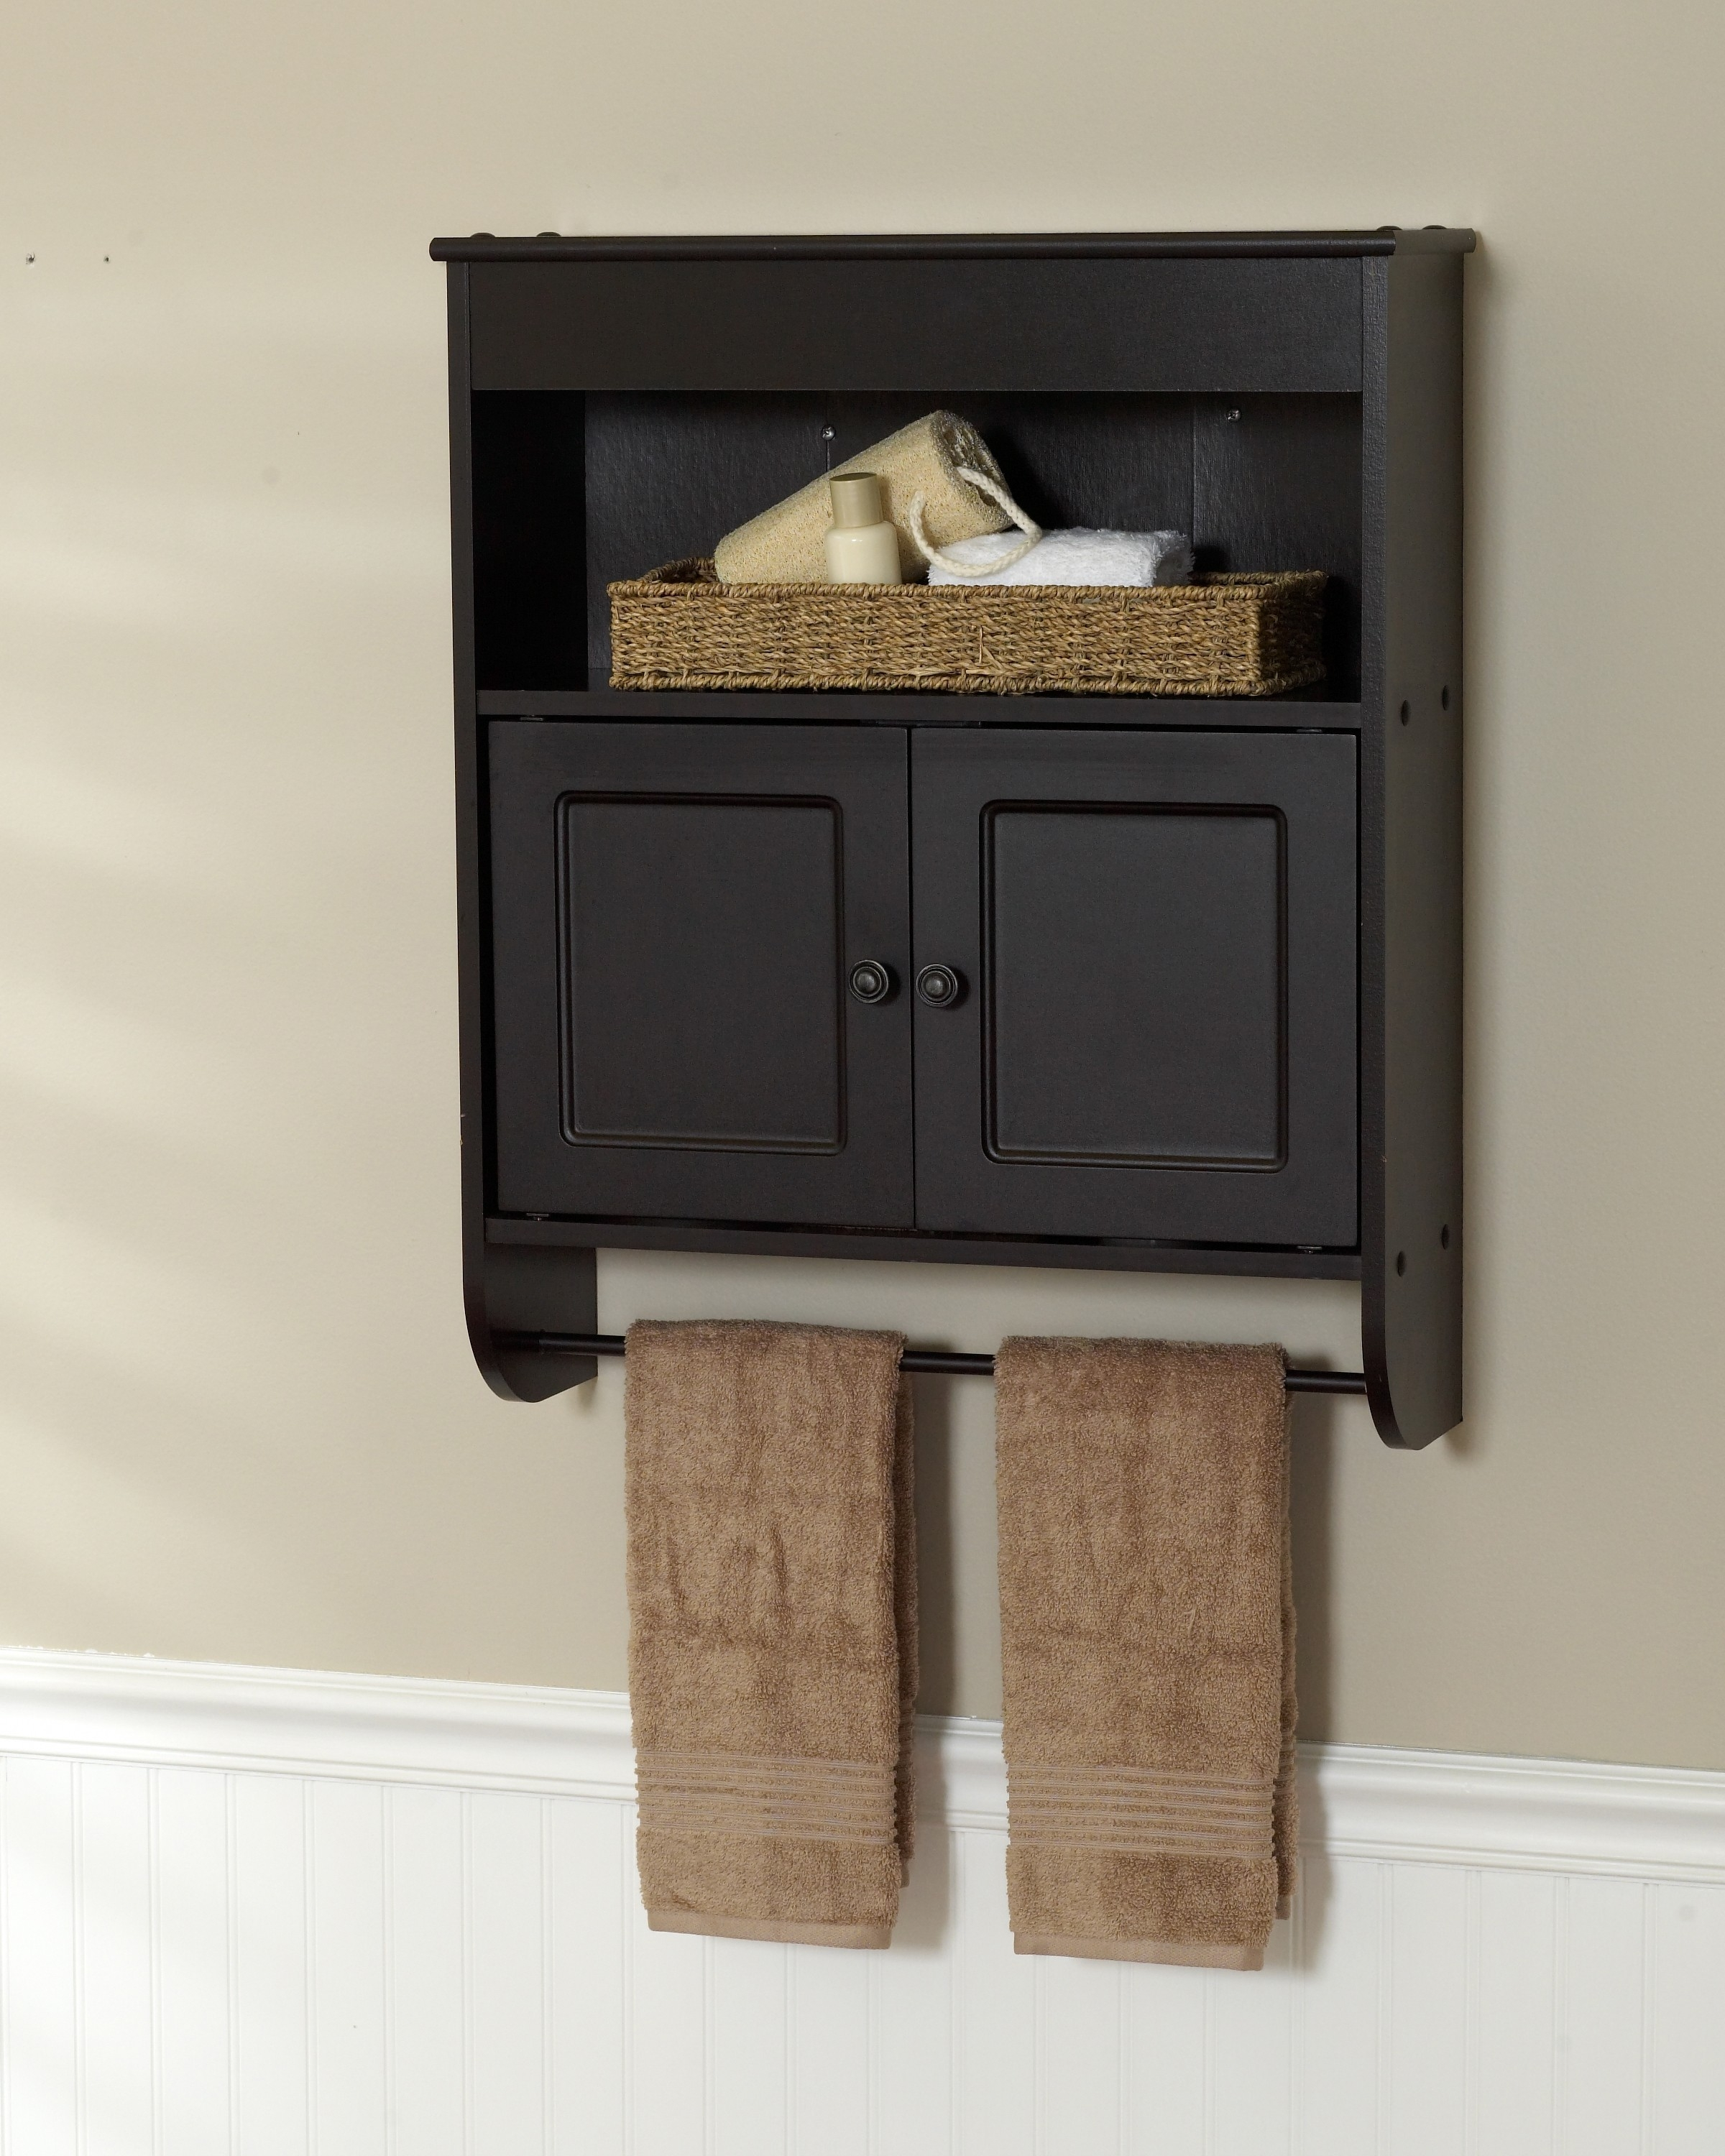 Permalink to Bathroom Storage Cabinets With Towel Bar